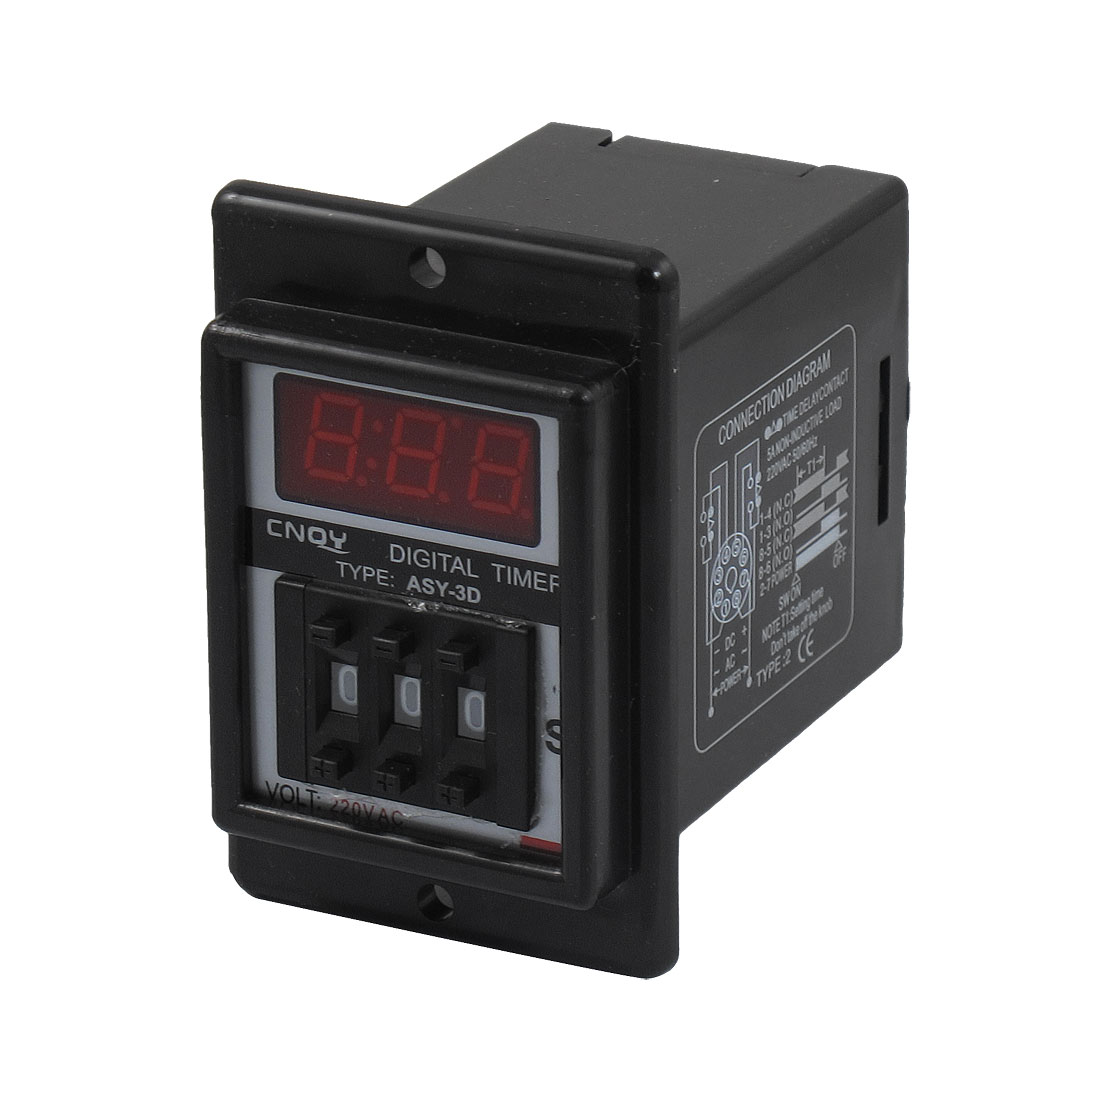 AC 220V 0.1-99.9 Second Digital Timer Time Delay Relay Black 8 Pin ASY-3D